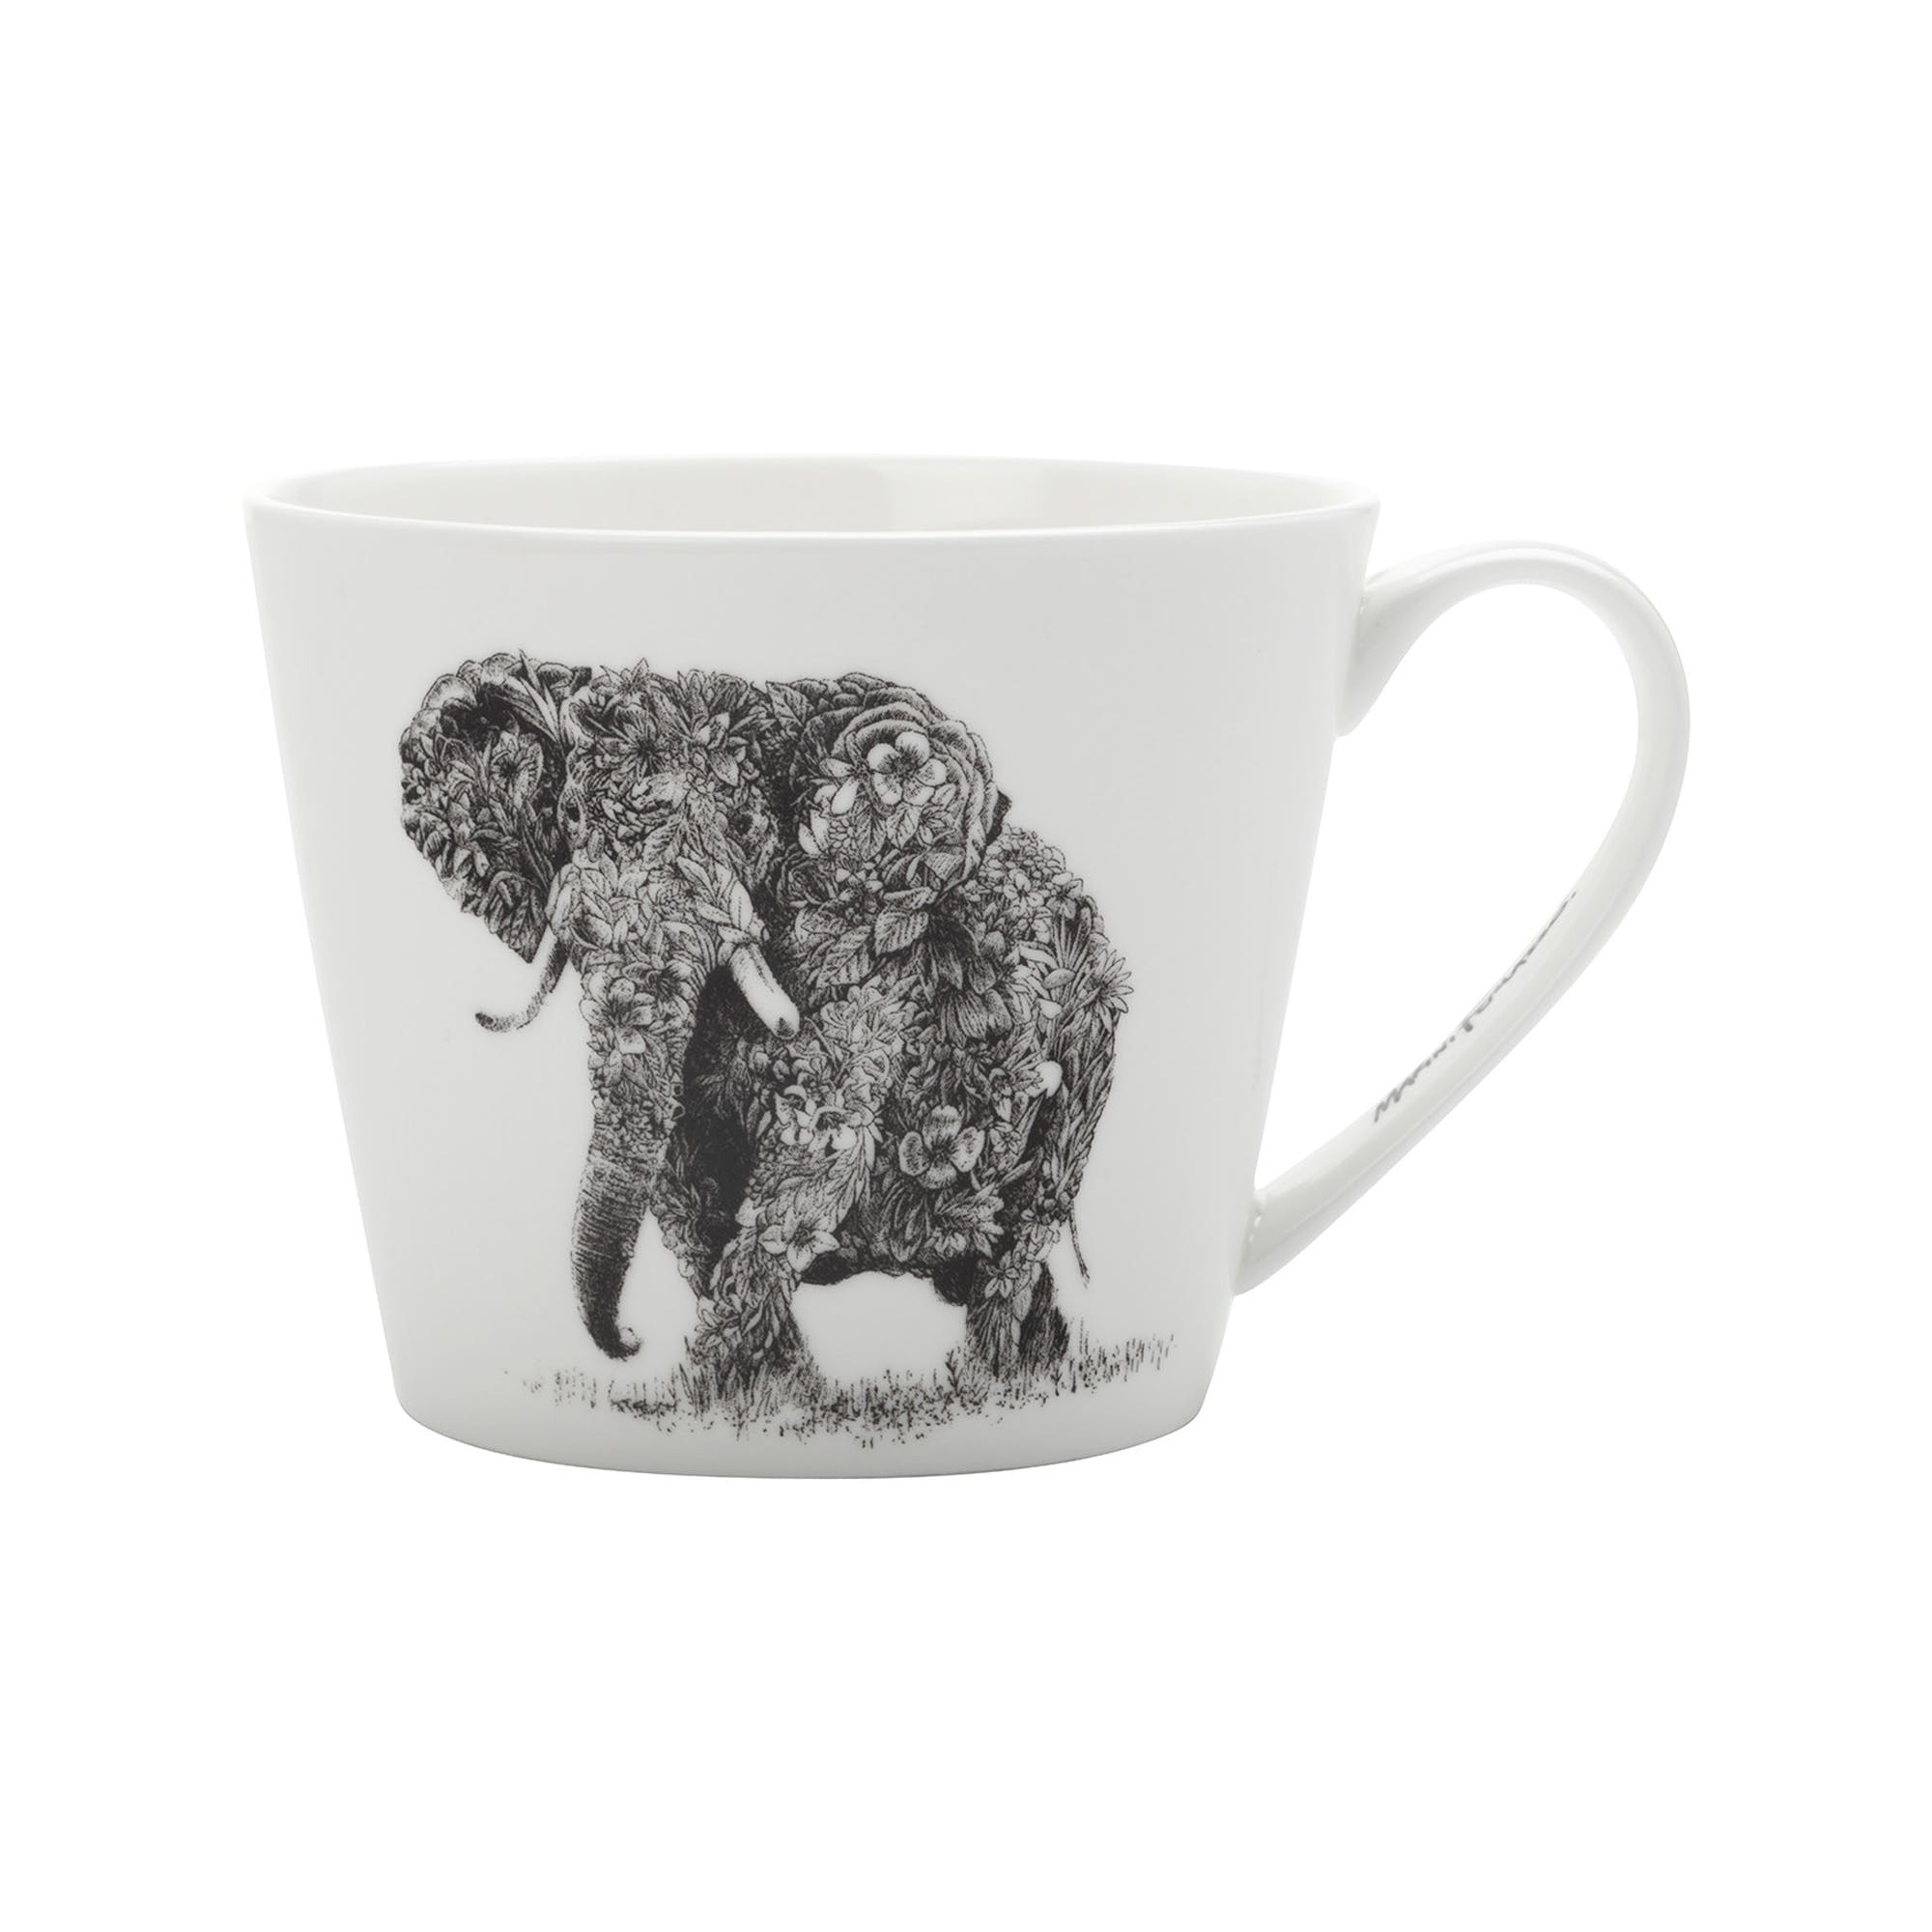 Elephant Mug in Gift Box